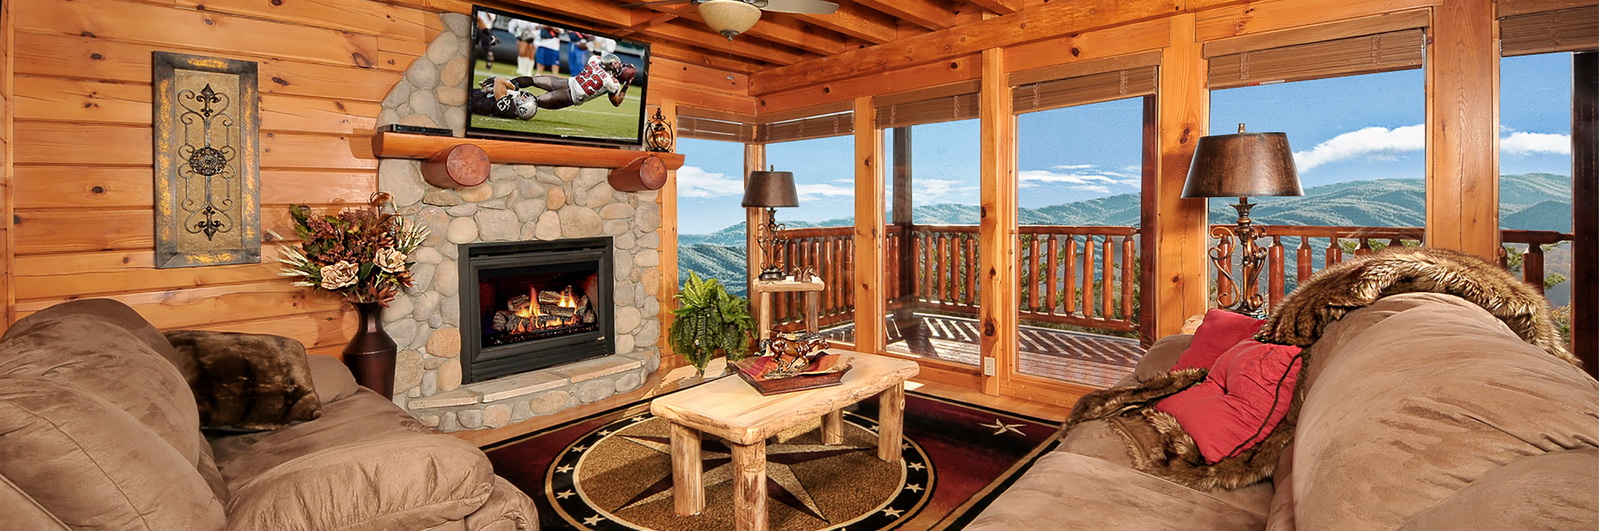 gatlinburg resorts pigeon forge victoriawithnameb tn cabins for in sale chalets